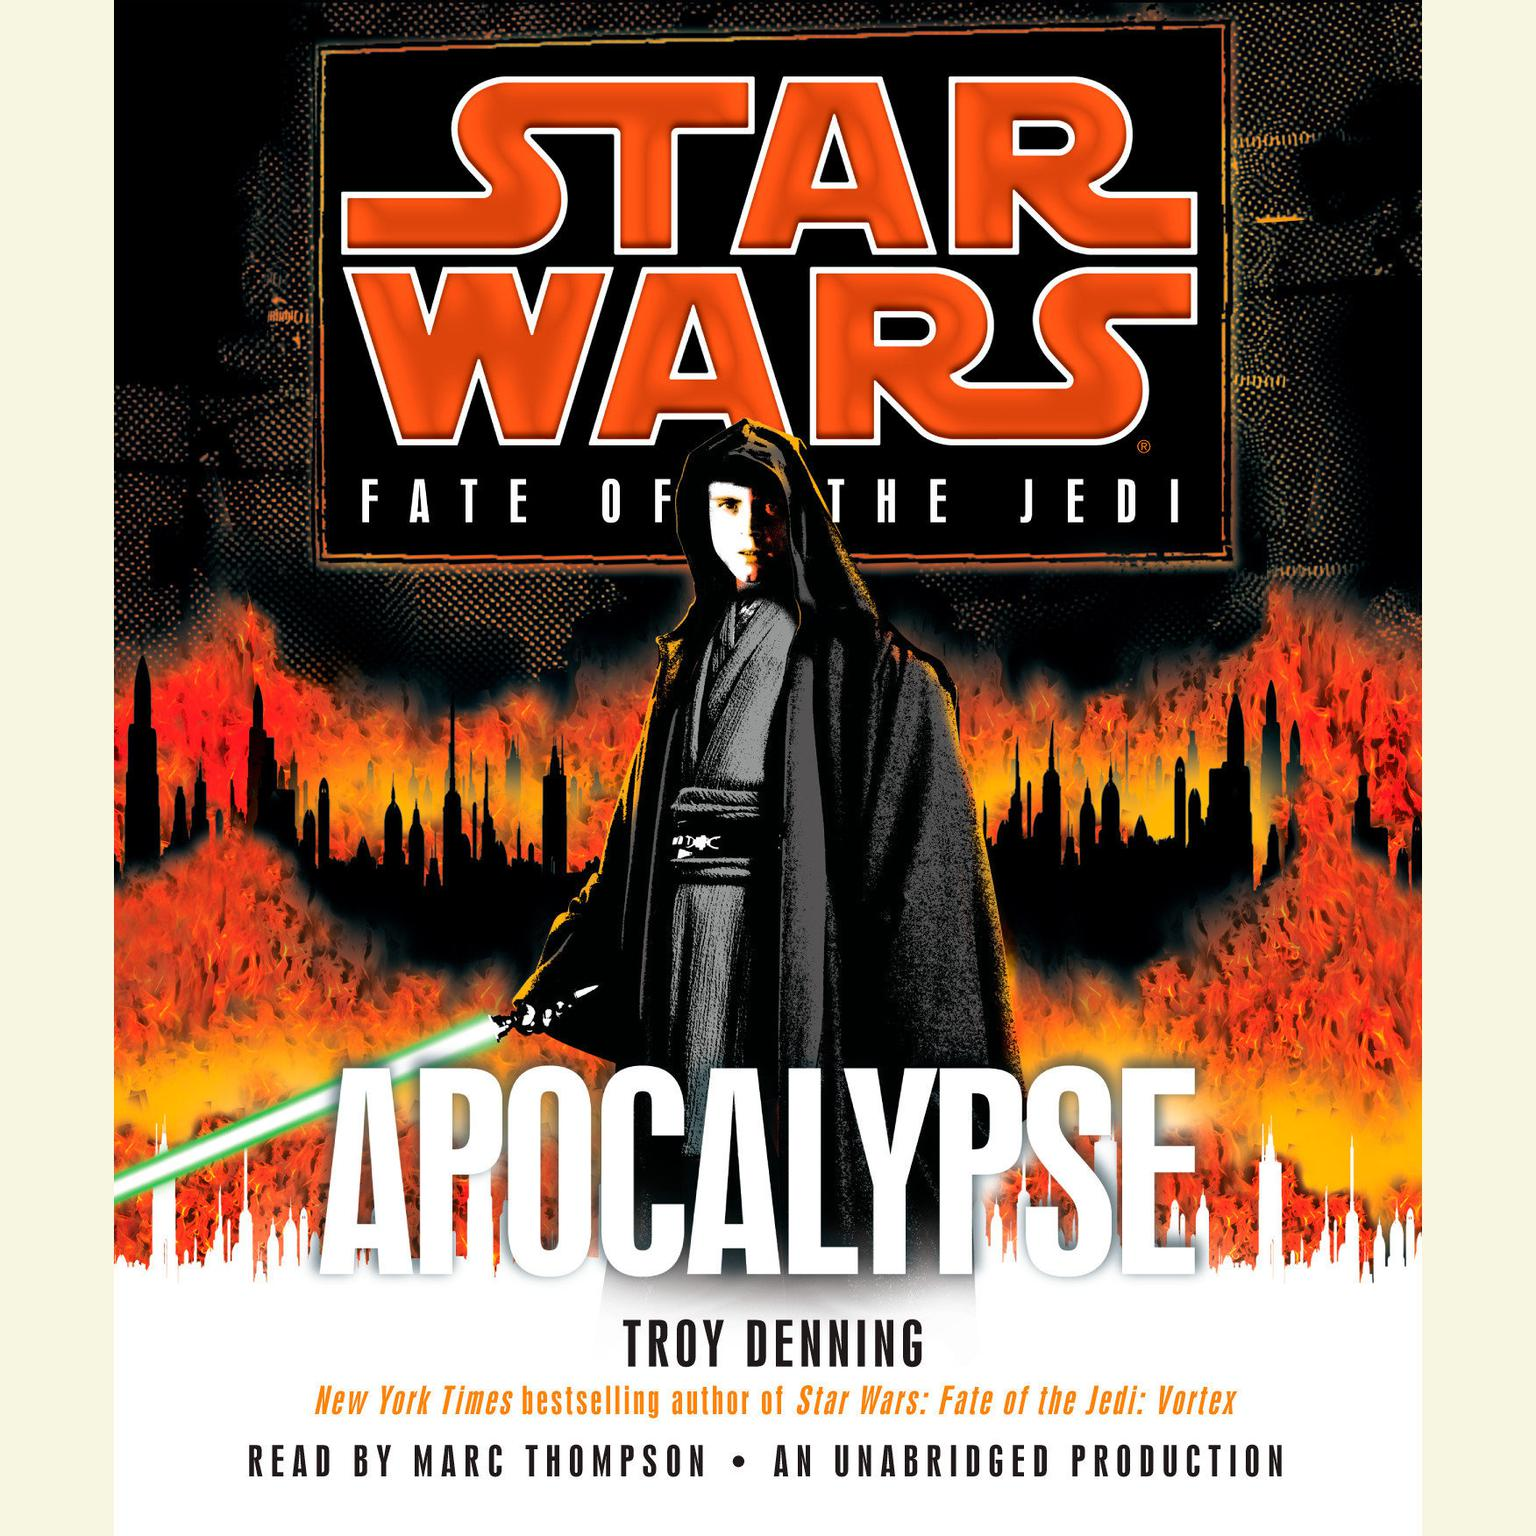 Apocalypse: Star Wars Legends (Fate of the Jedi) Audiobook, by Troy Denning